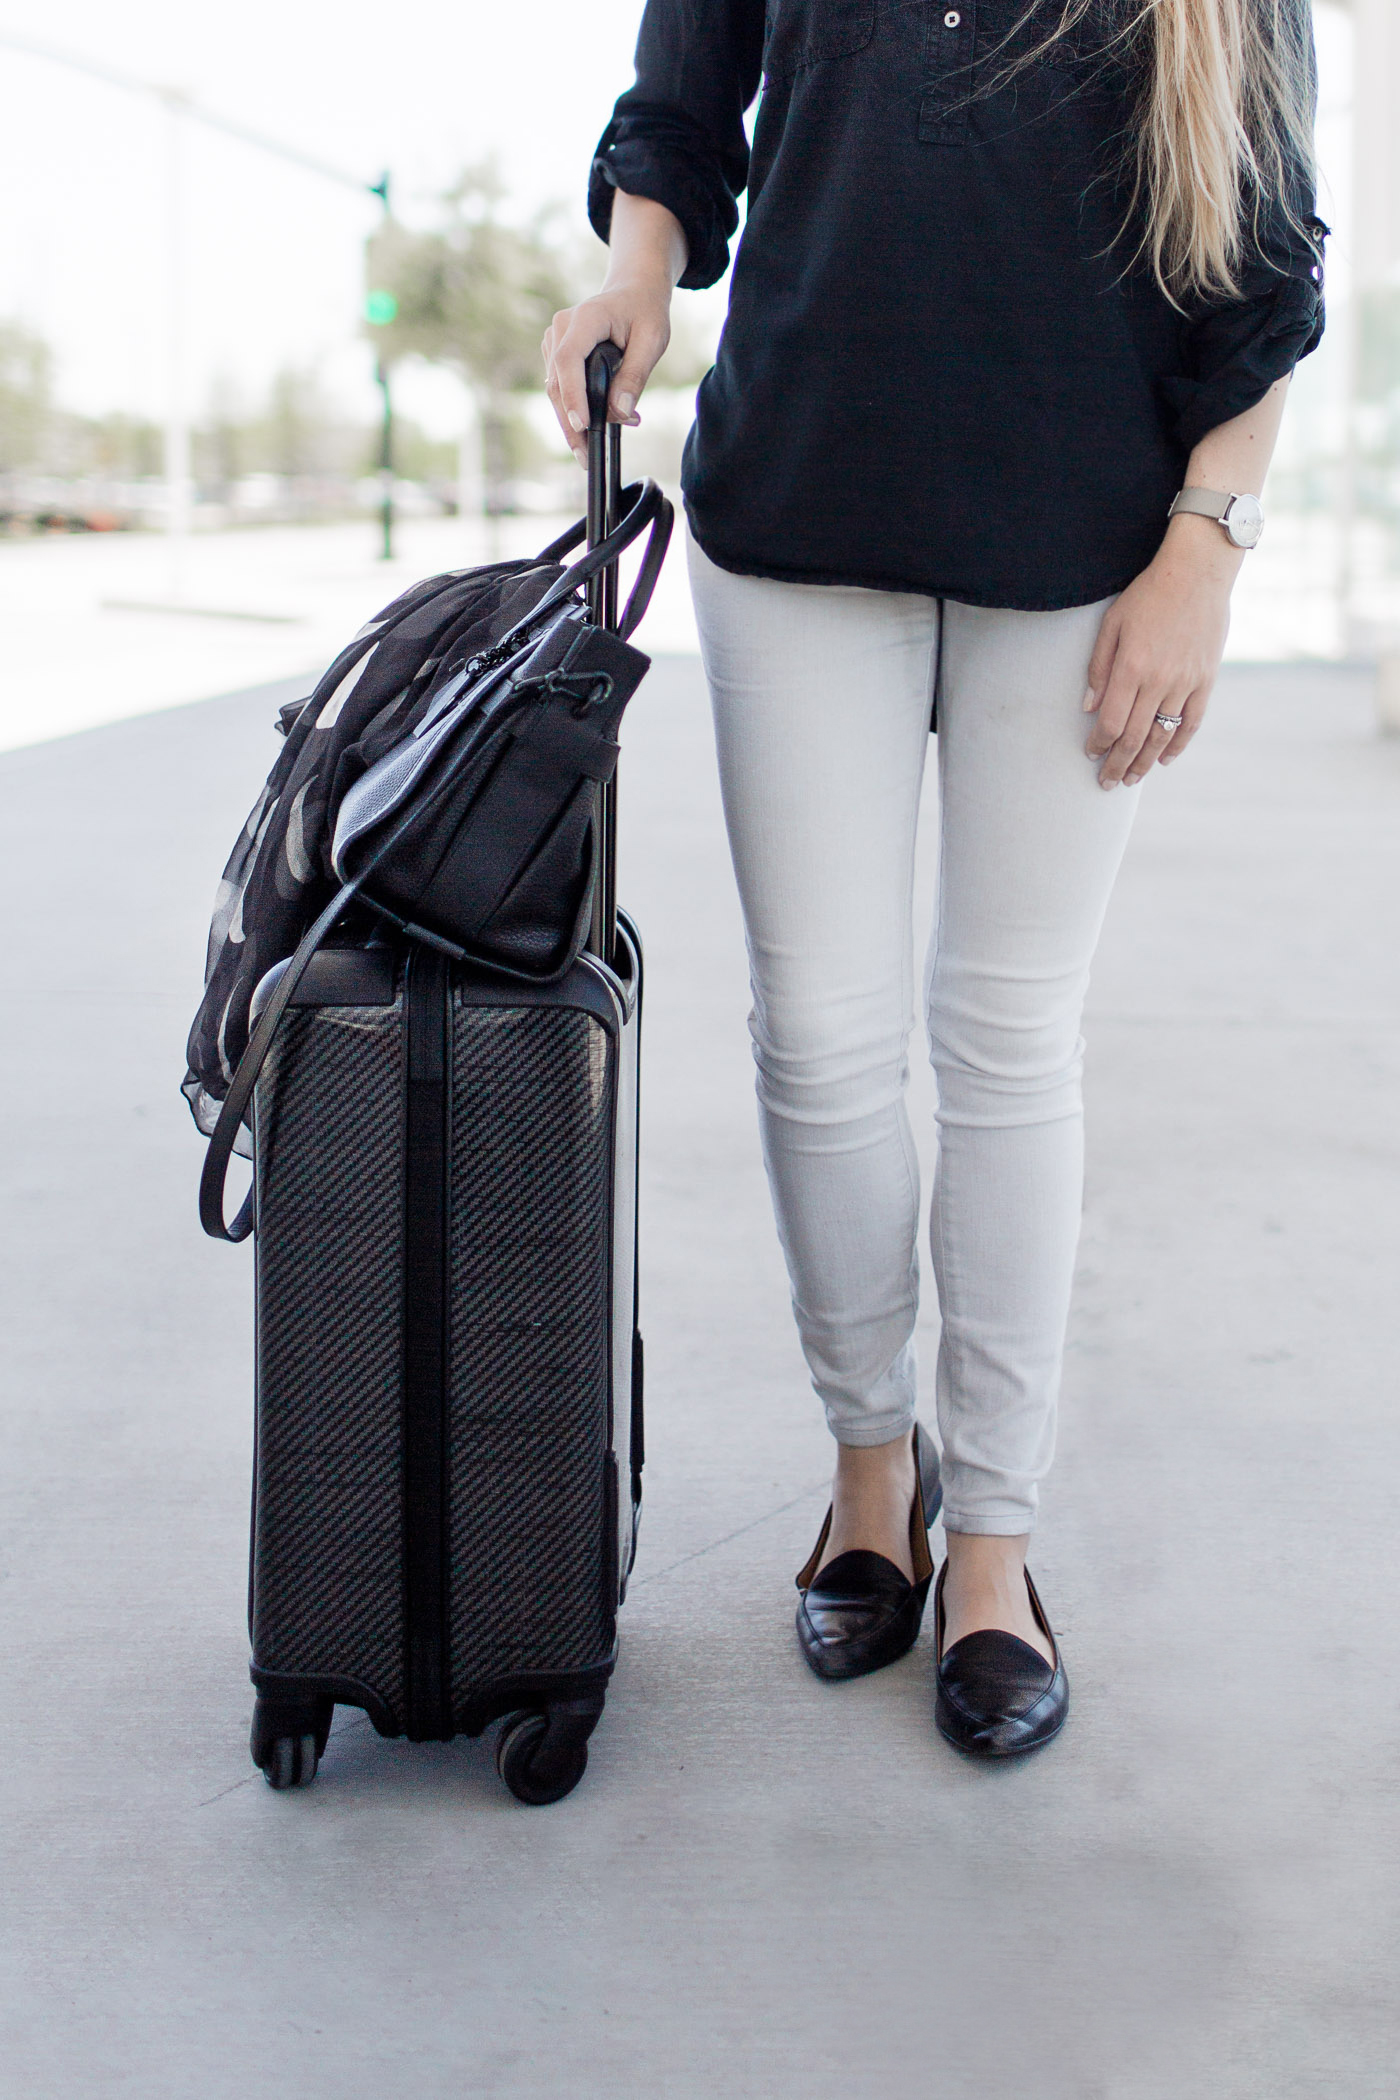 My go-to airport travel outfit, featuring Lou & Grey, Tumi, Everlane, & Coach.